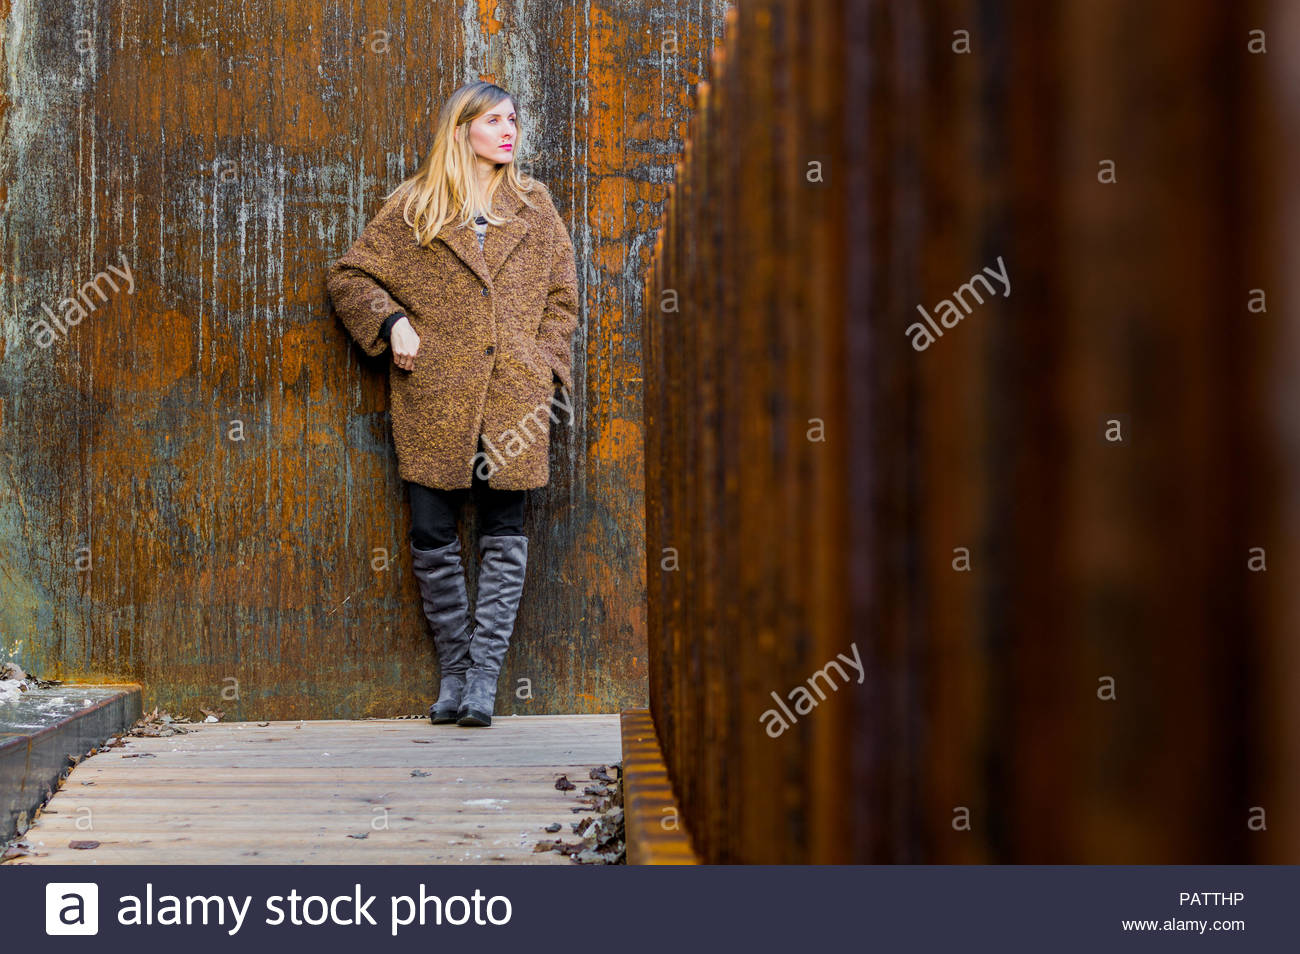 Woman in warm clothing standing against a wall - Stock Image